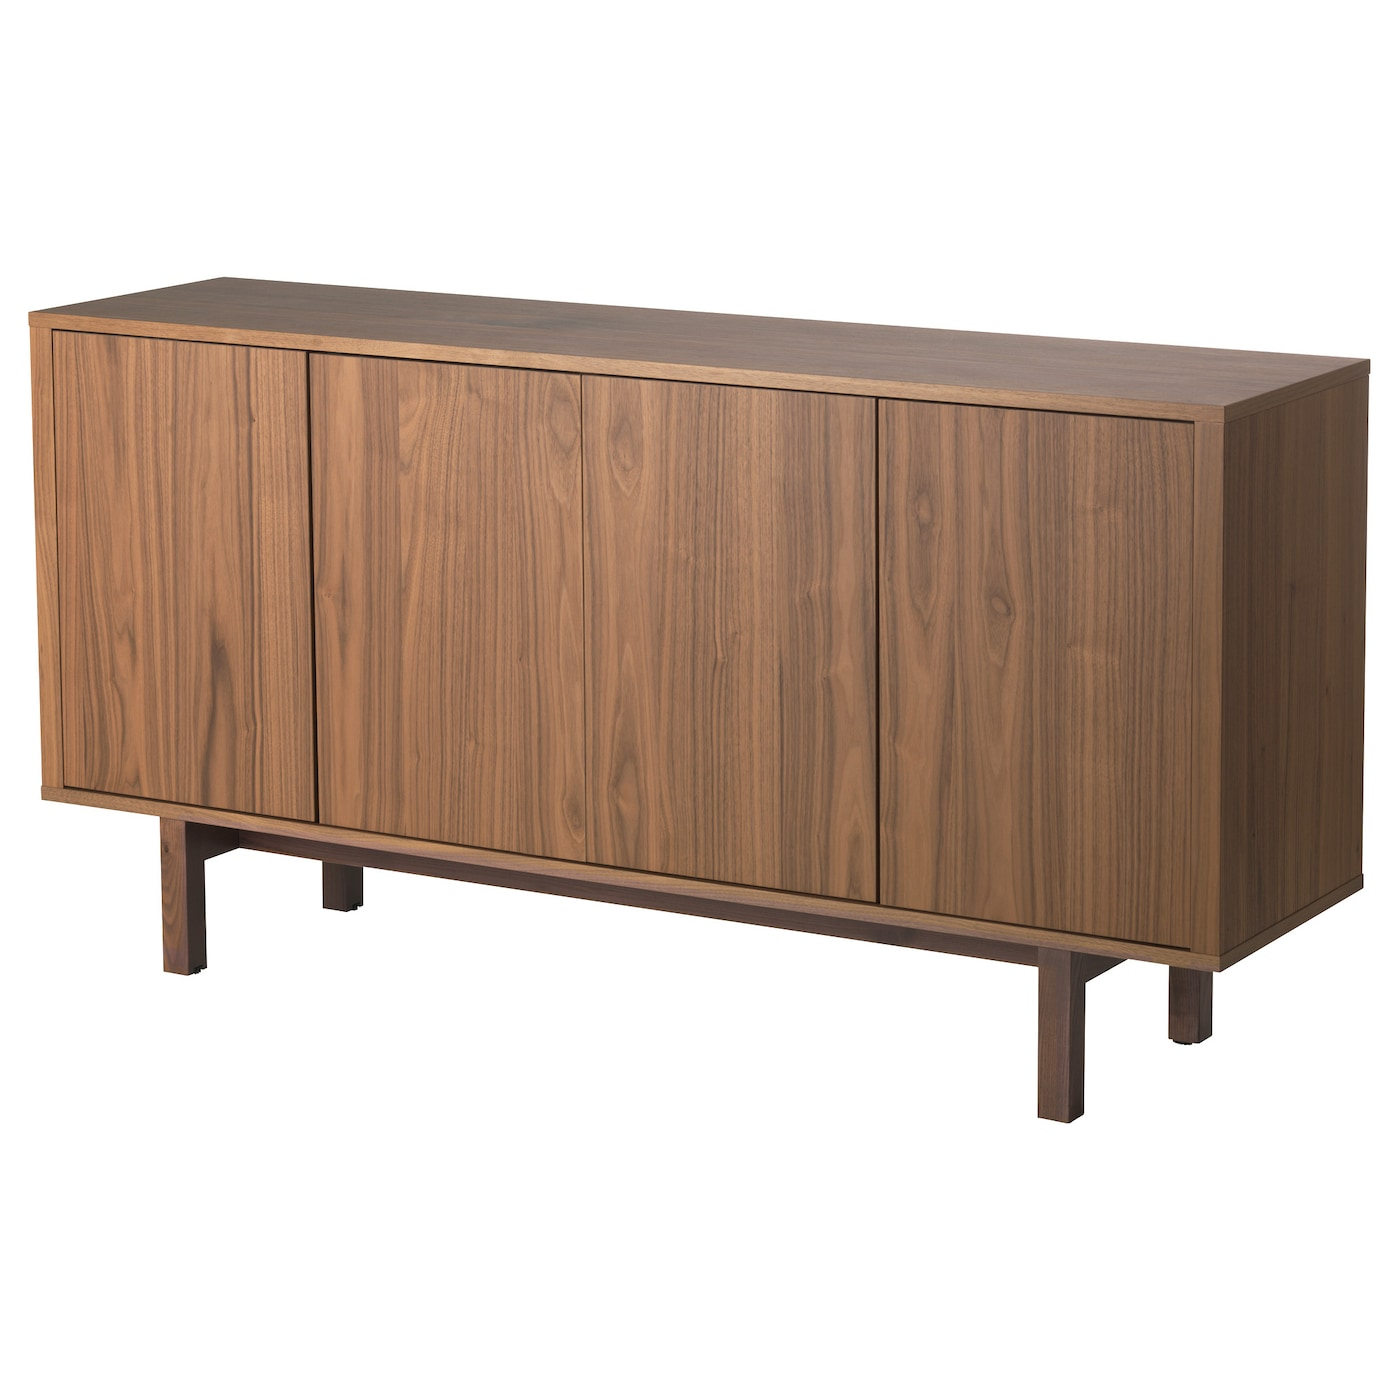 stockholm sideboard walnut veneer 160x81 cm ikea. Black Bedroom Furniture Sets. Home Design Ideas